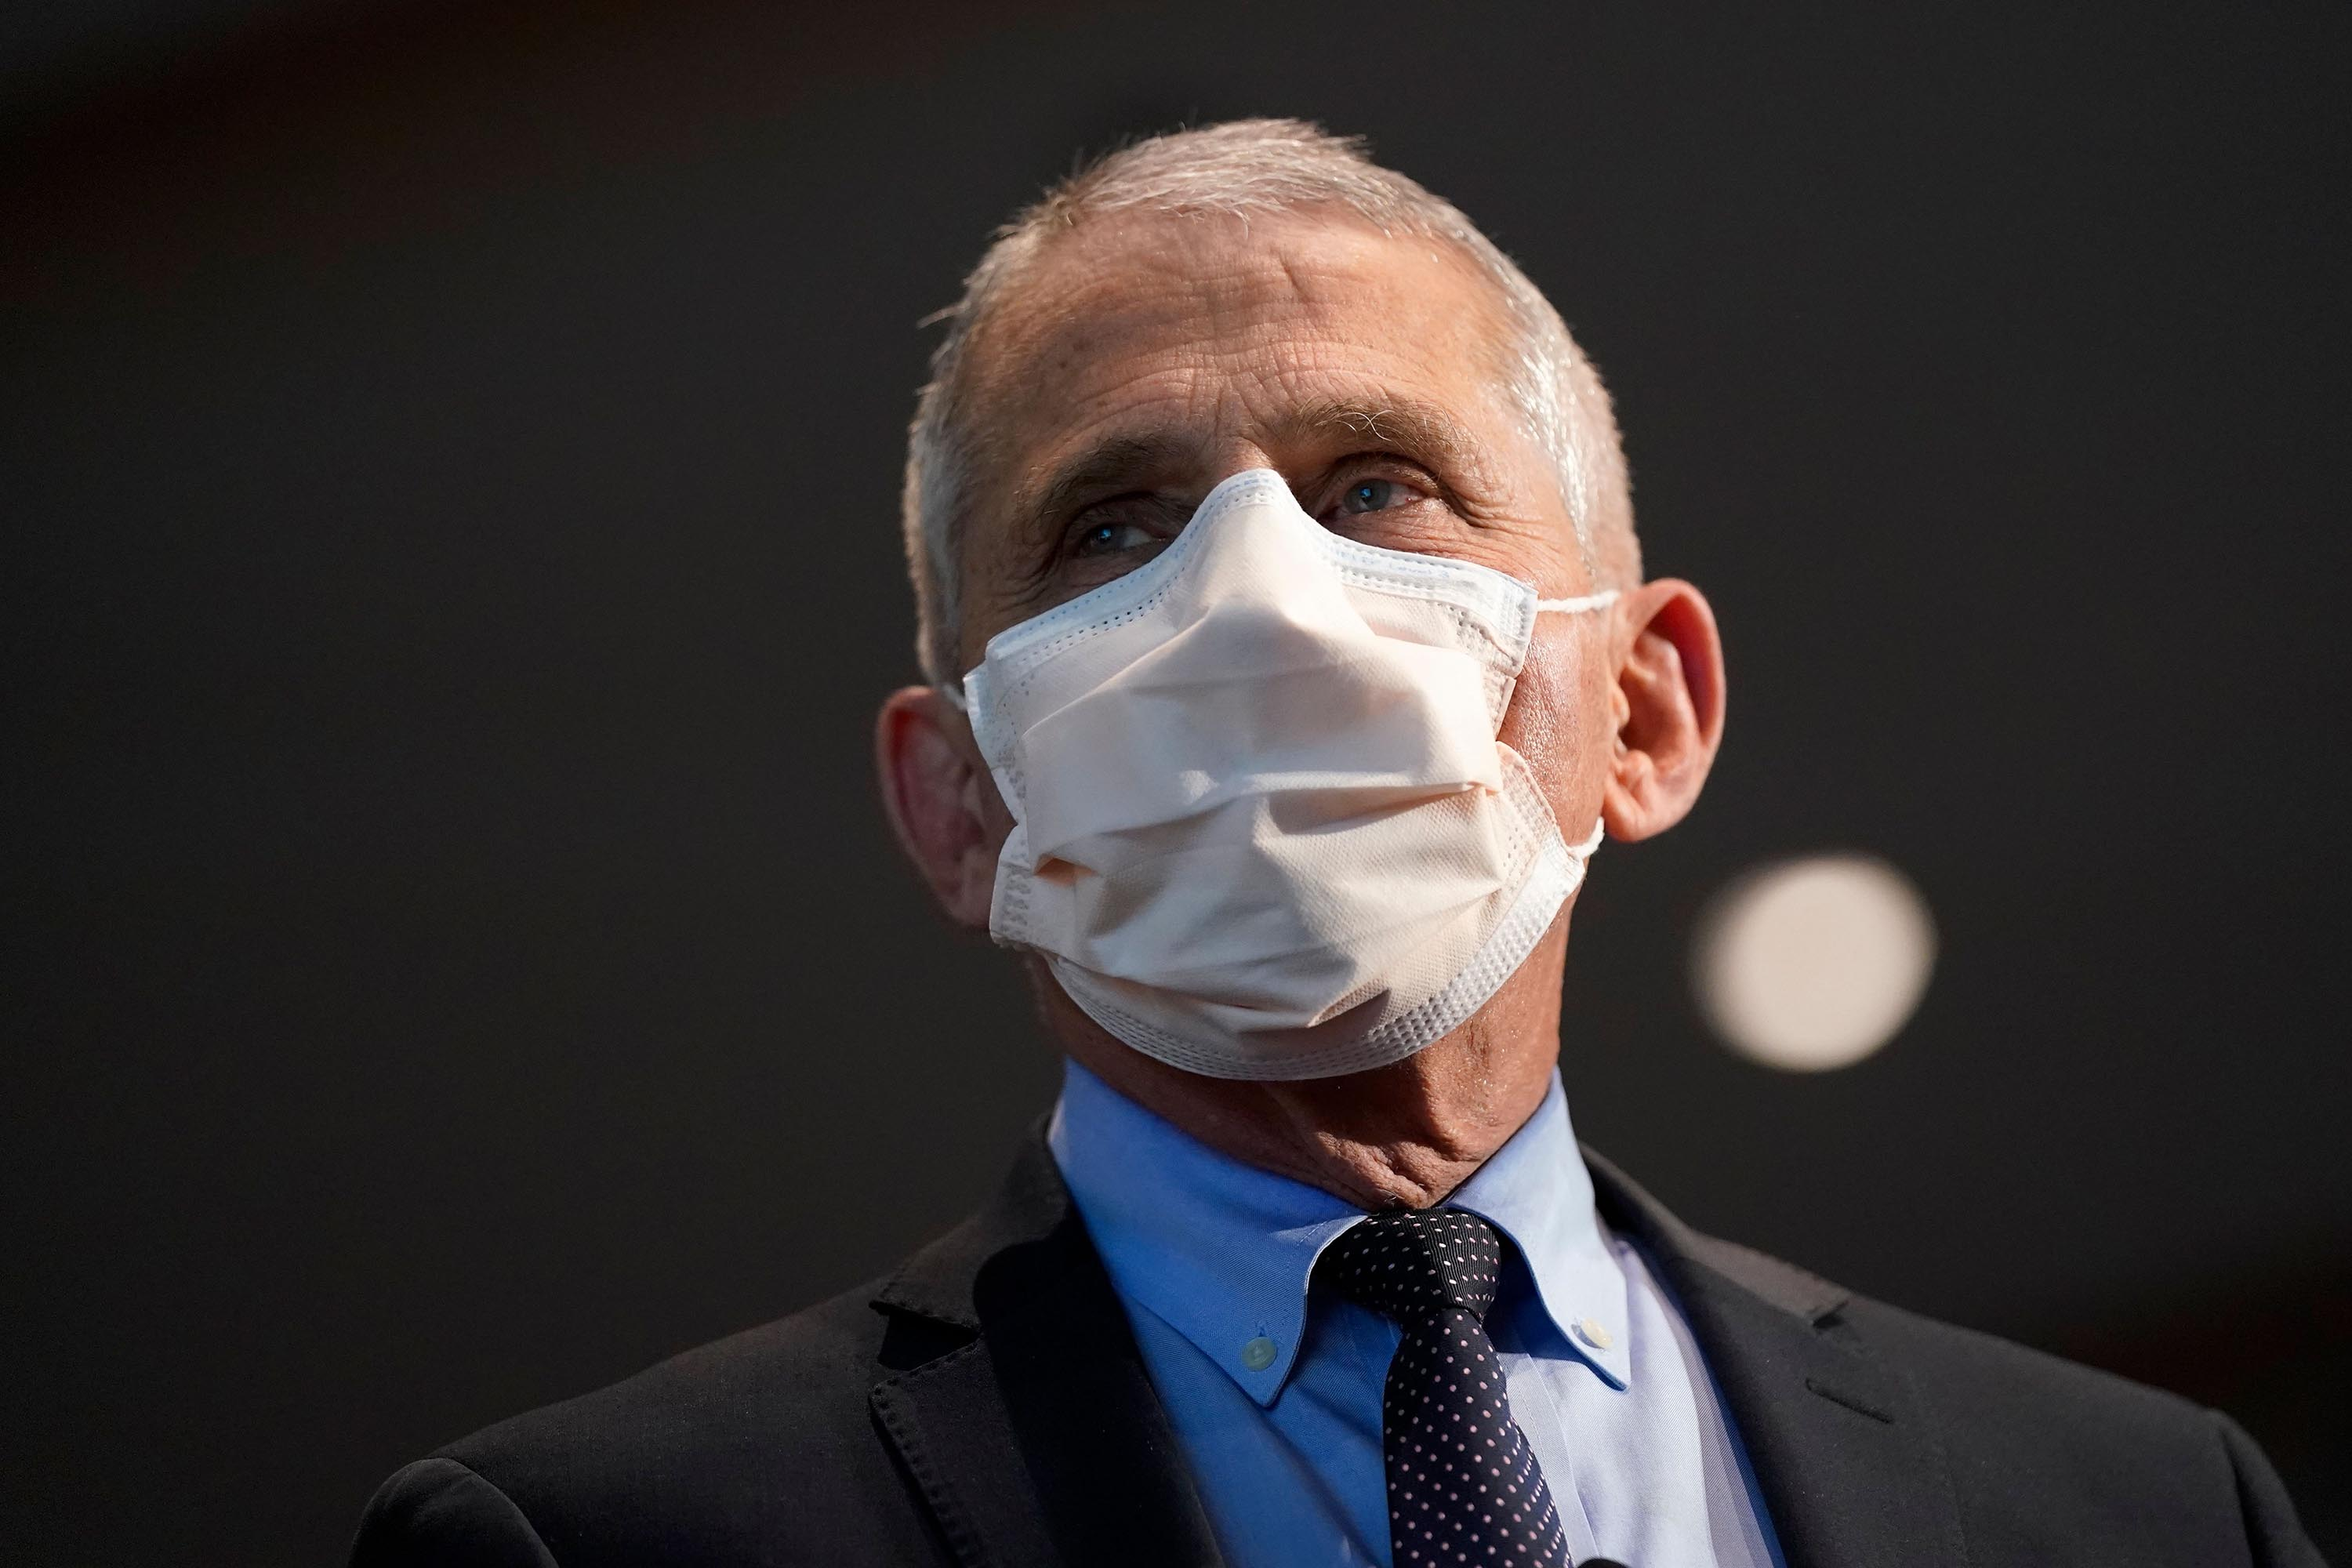 Dr. Anthony Fauci, director of the National Institute of Allergy and Infectious Diseases, is pictured before receiving his first dose of the Covid-19 vaccine on December 22, in Bethesda, Maryland.